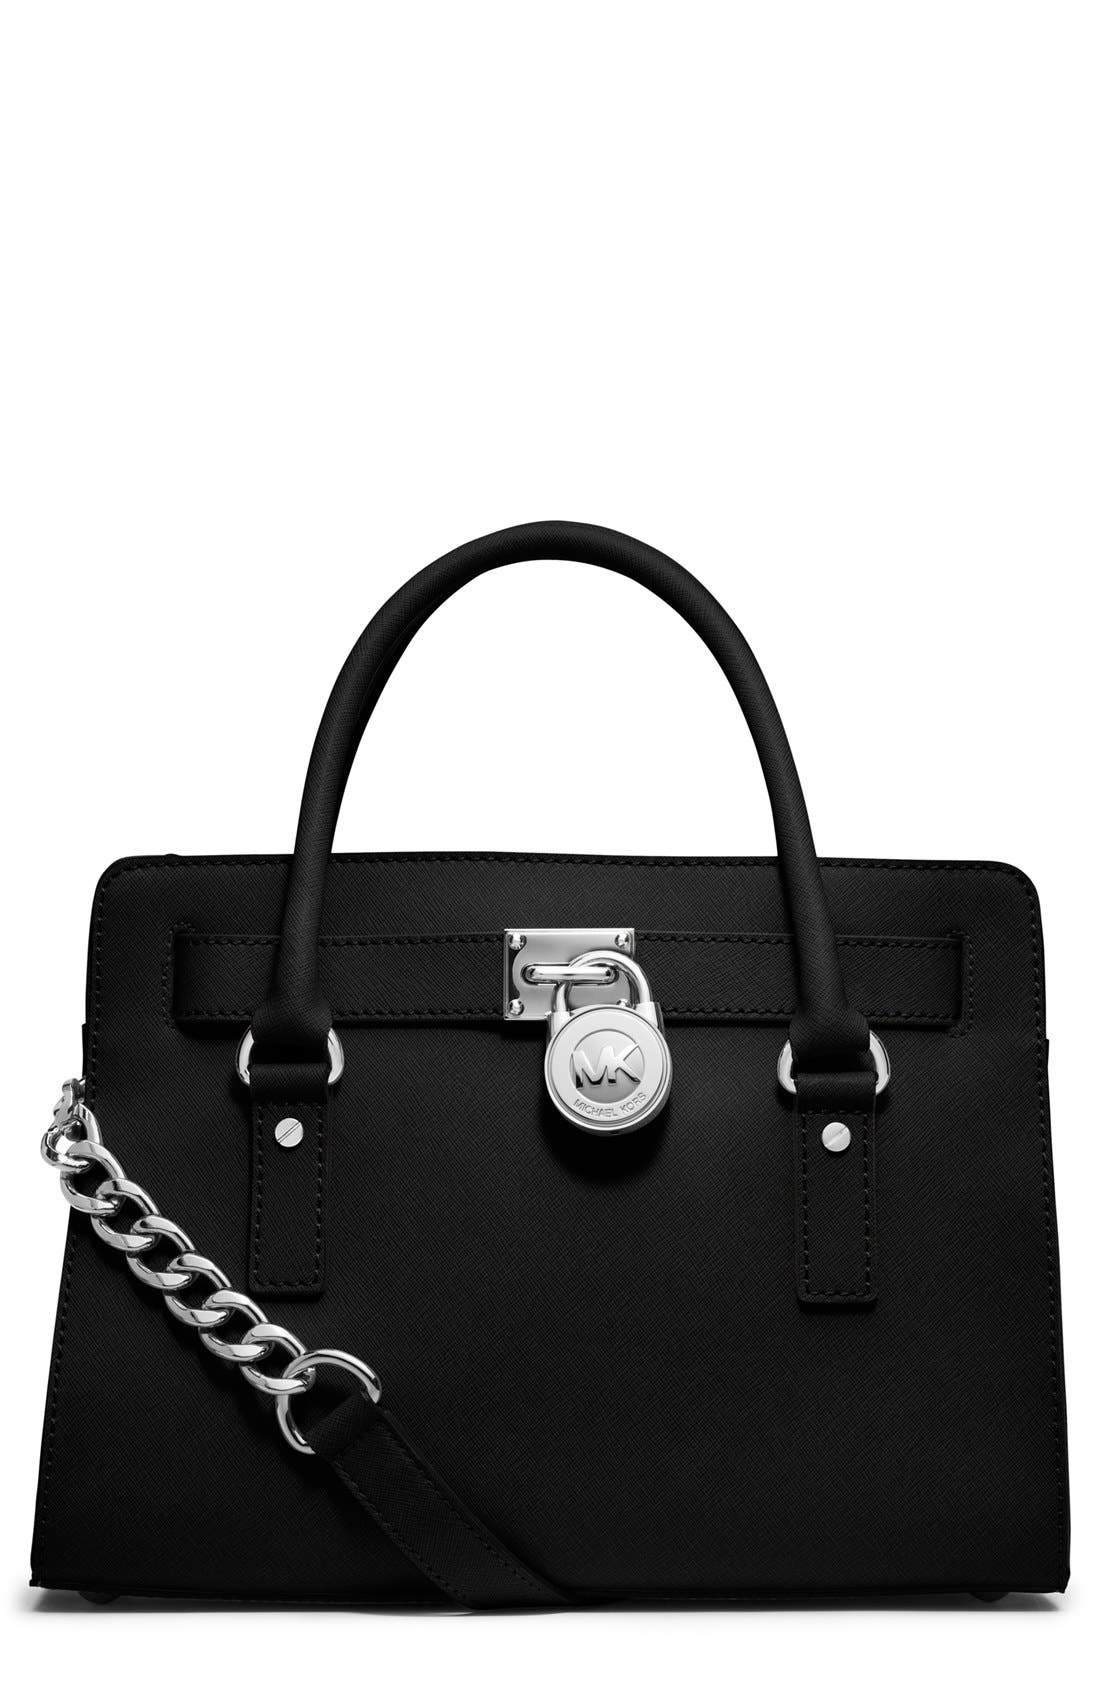 Main Image - MICHAEL Michael Kors 'Medium Hamilton' Saffiano Leather Satchel